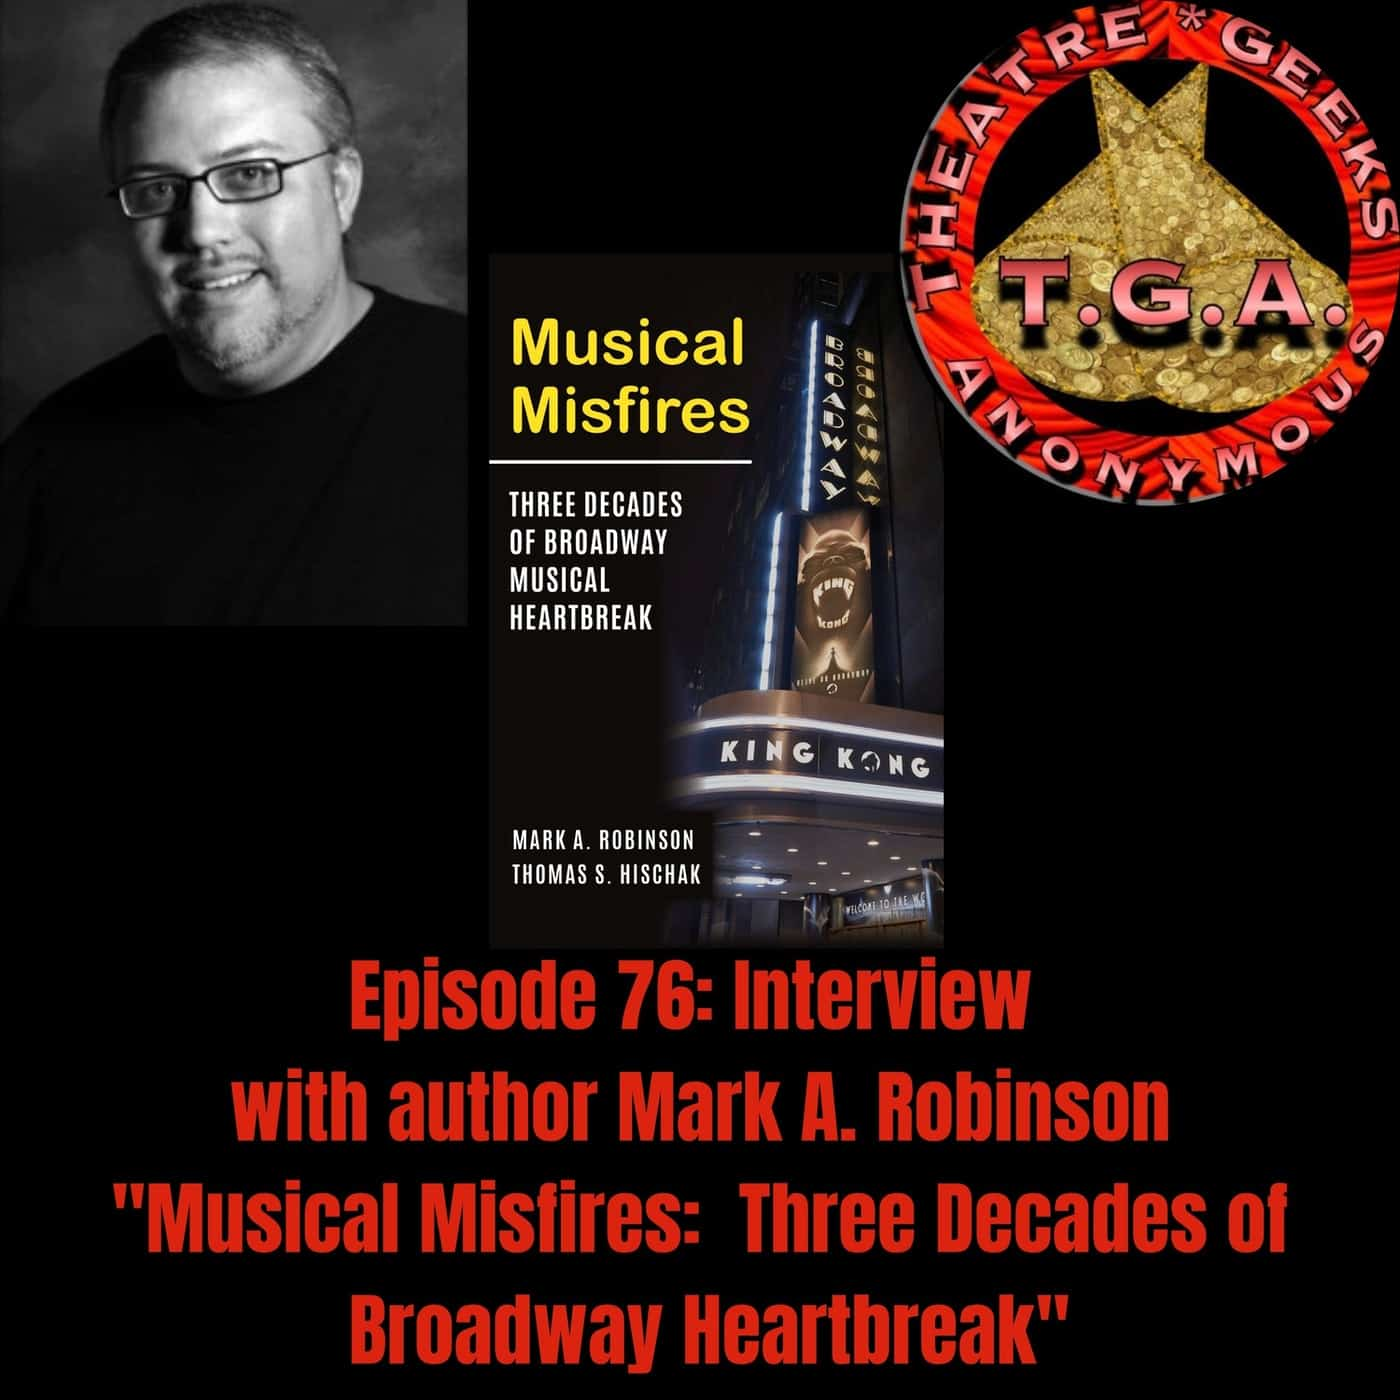 Episode 76: Musical Misfires: An Interview with Author Mark A. Robinson